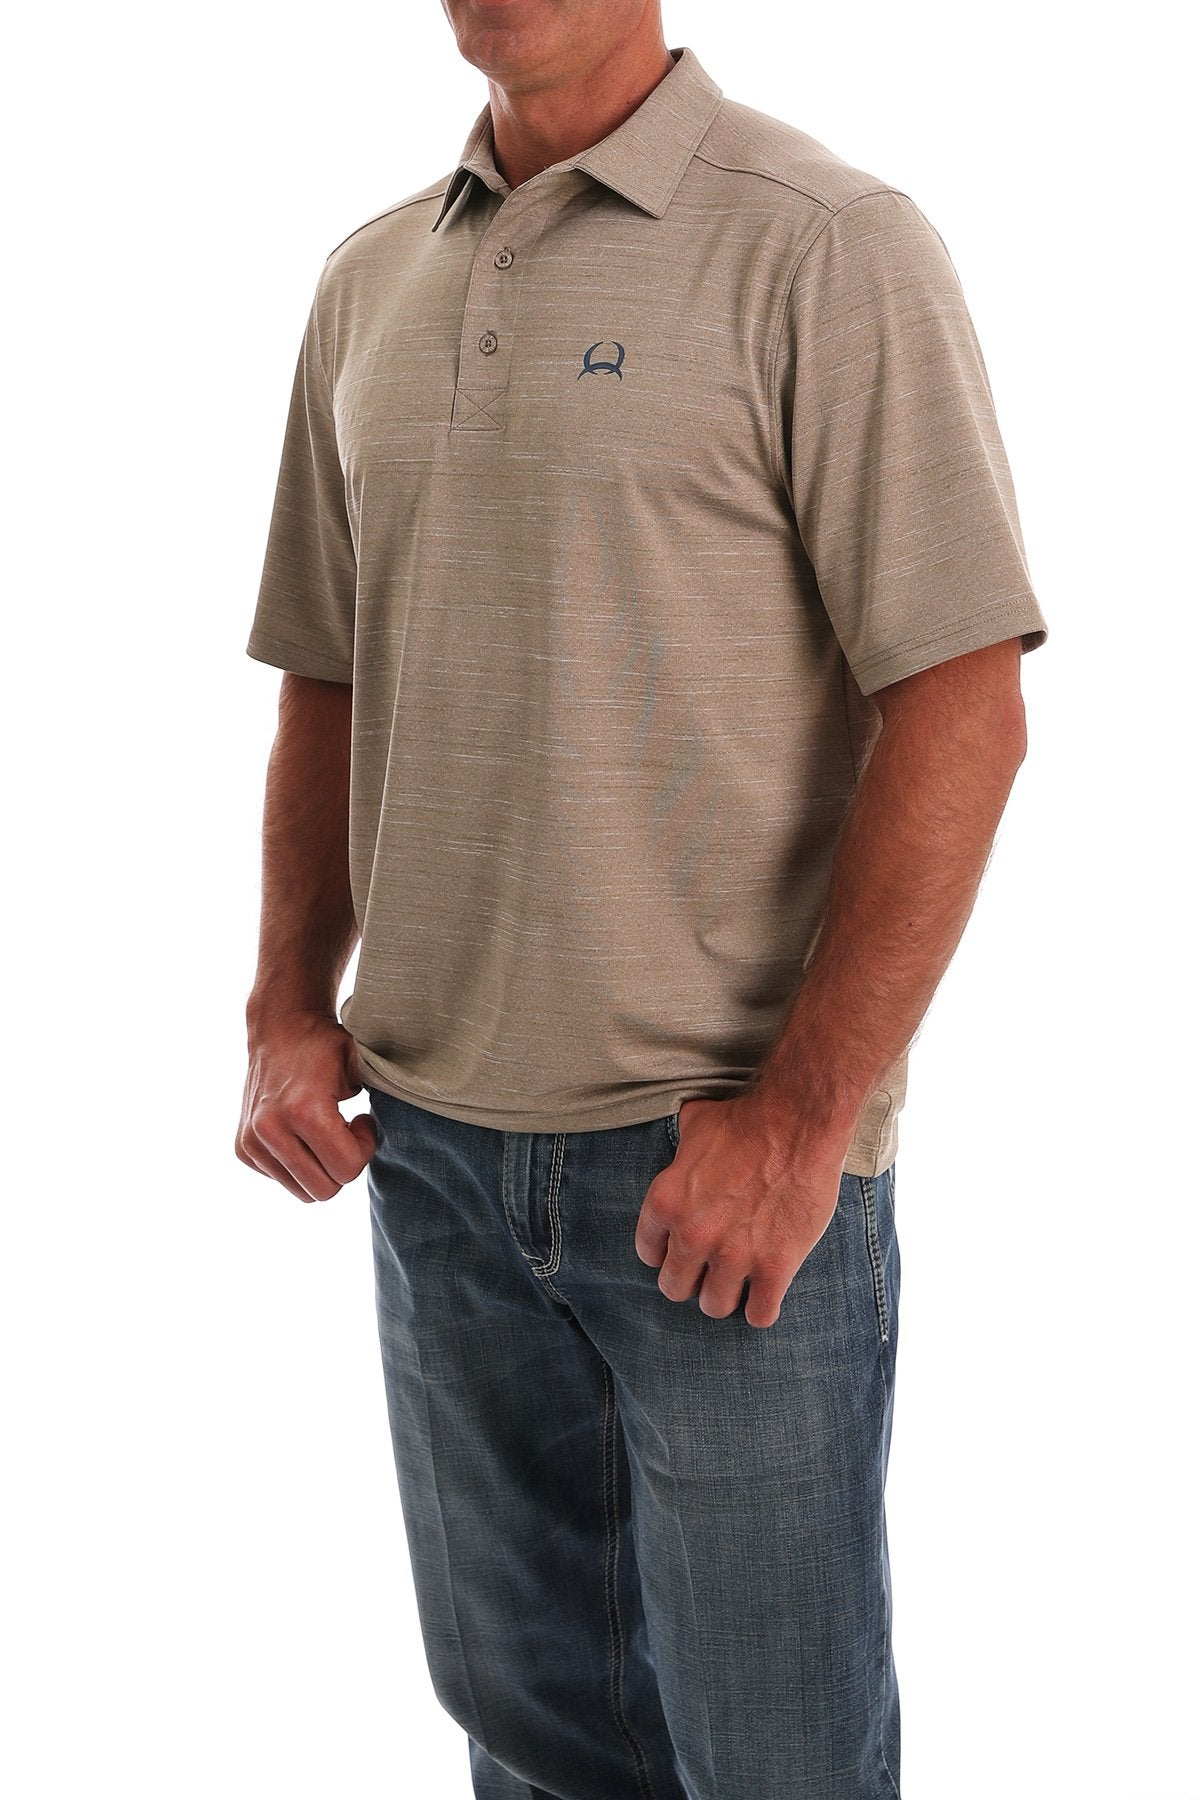 MENS ARENAFLEX SHORT SLEEVE POLO SHIRT